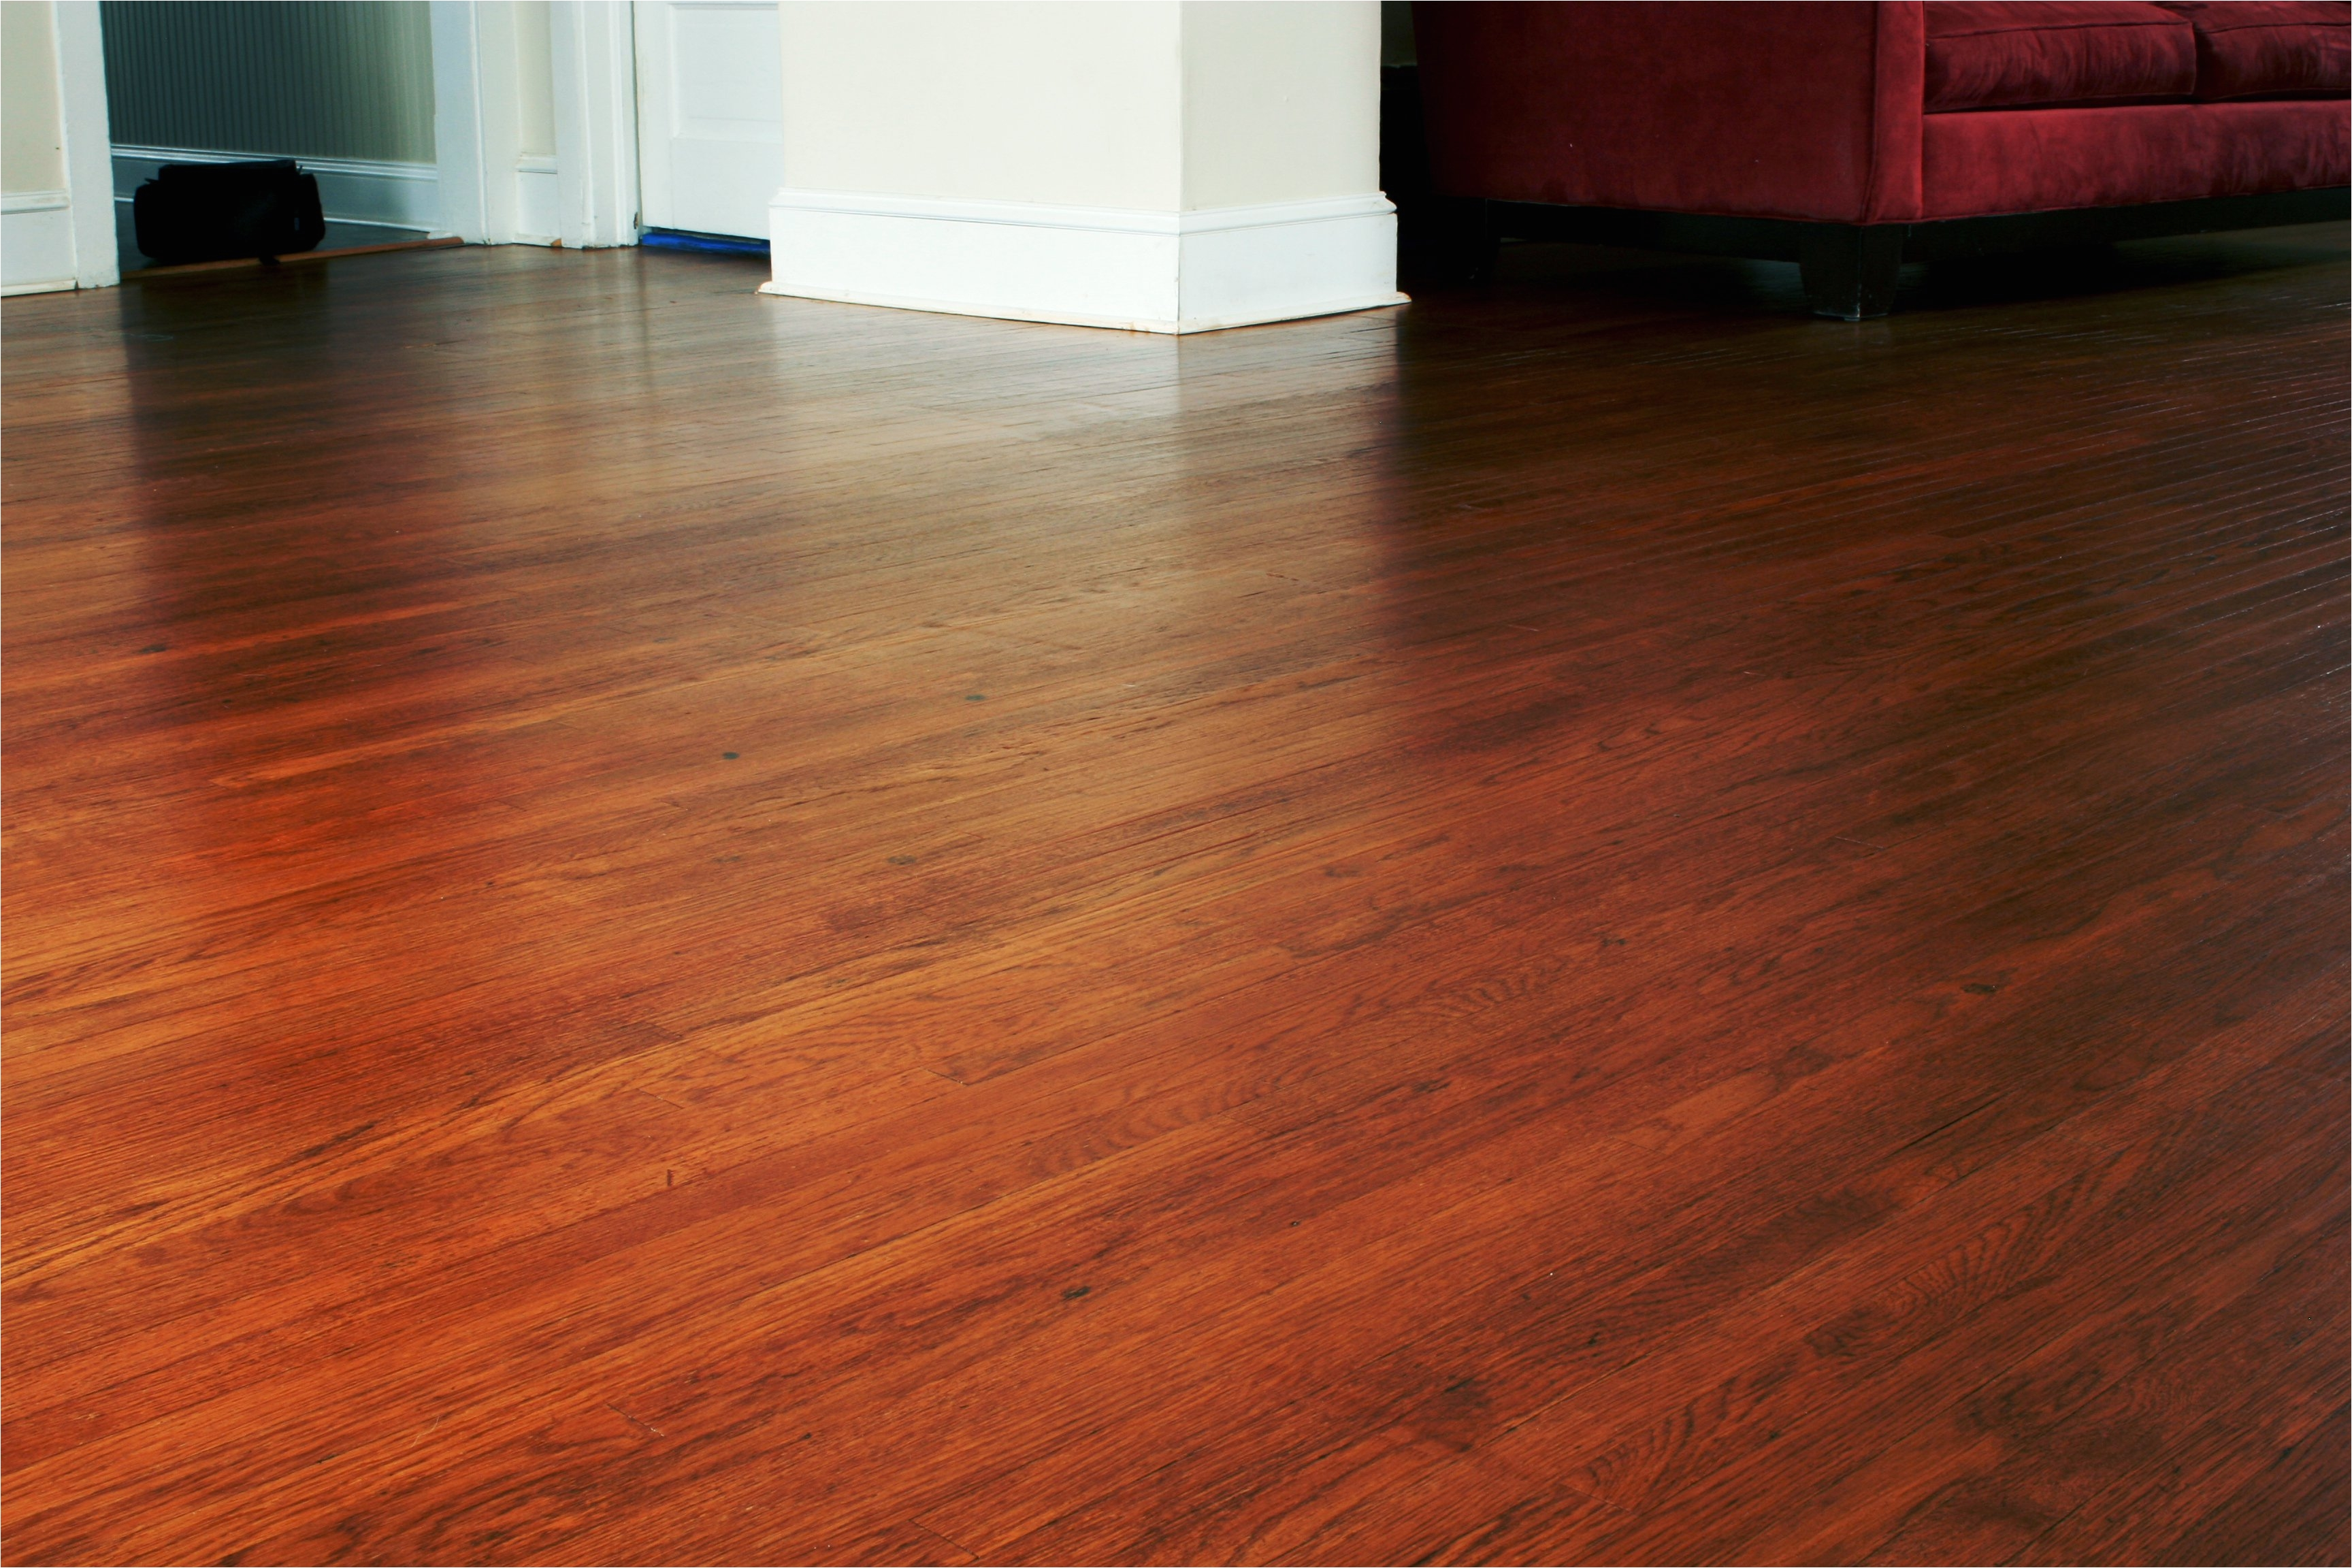 Floor Leveling Contractors Chicago How to Diagnose and Repair Sloping Floors Homeadvisor